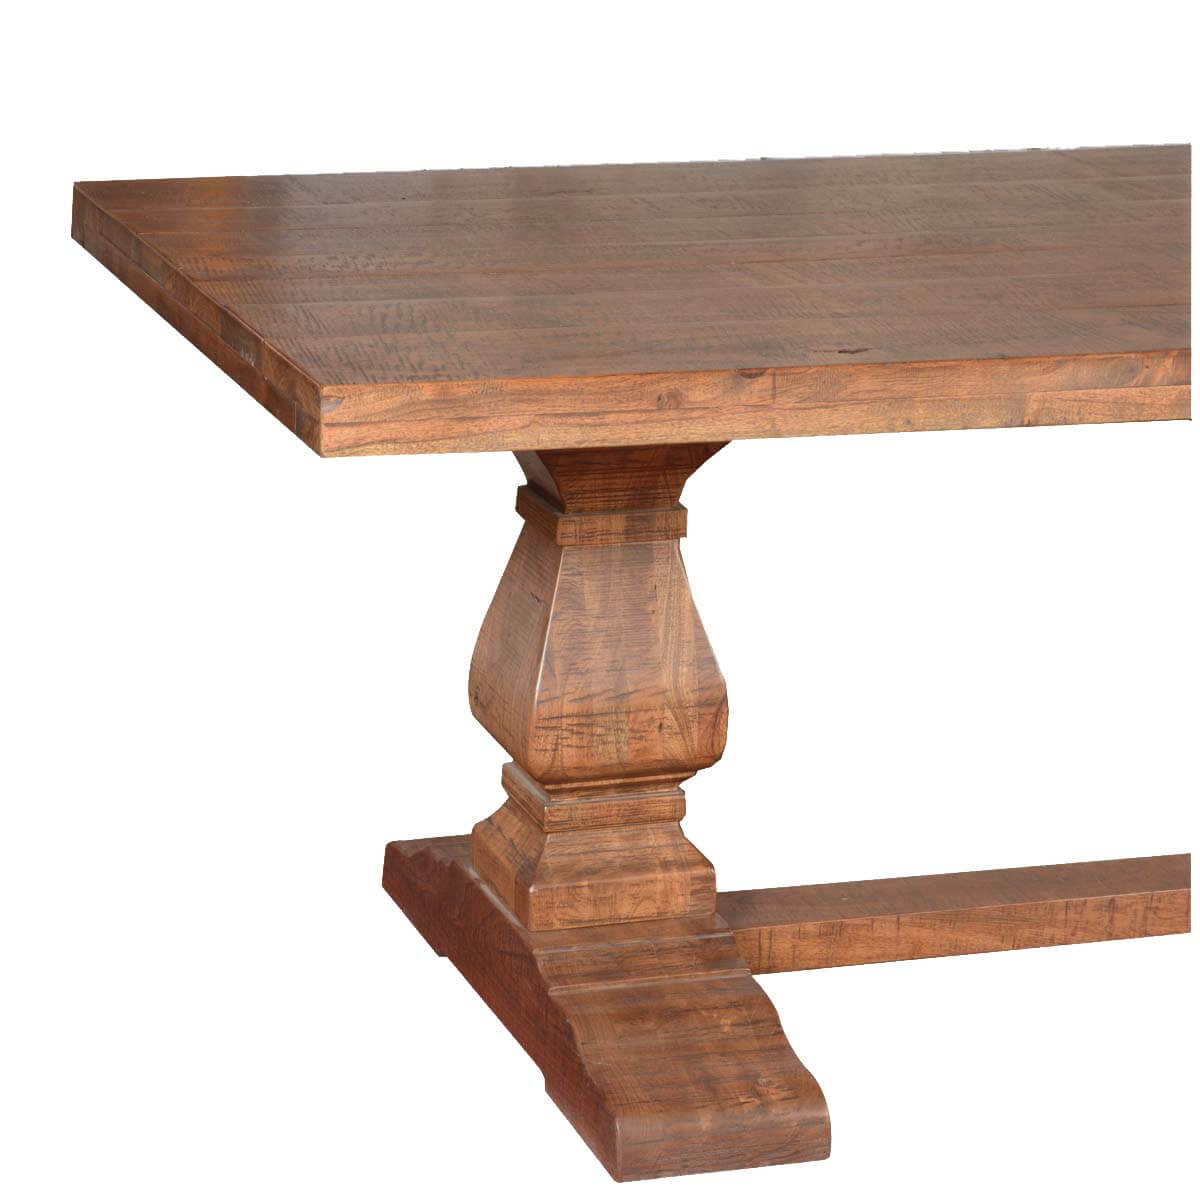 Trestle pedestal traditional eco friendly wood rustic for Traditional dining table